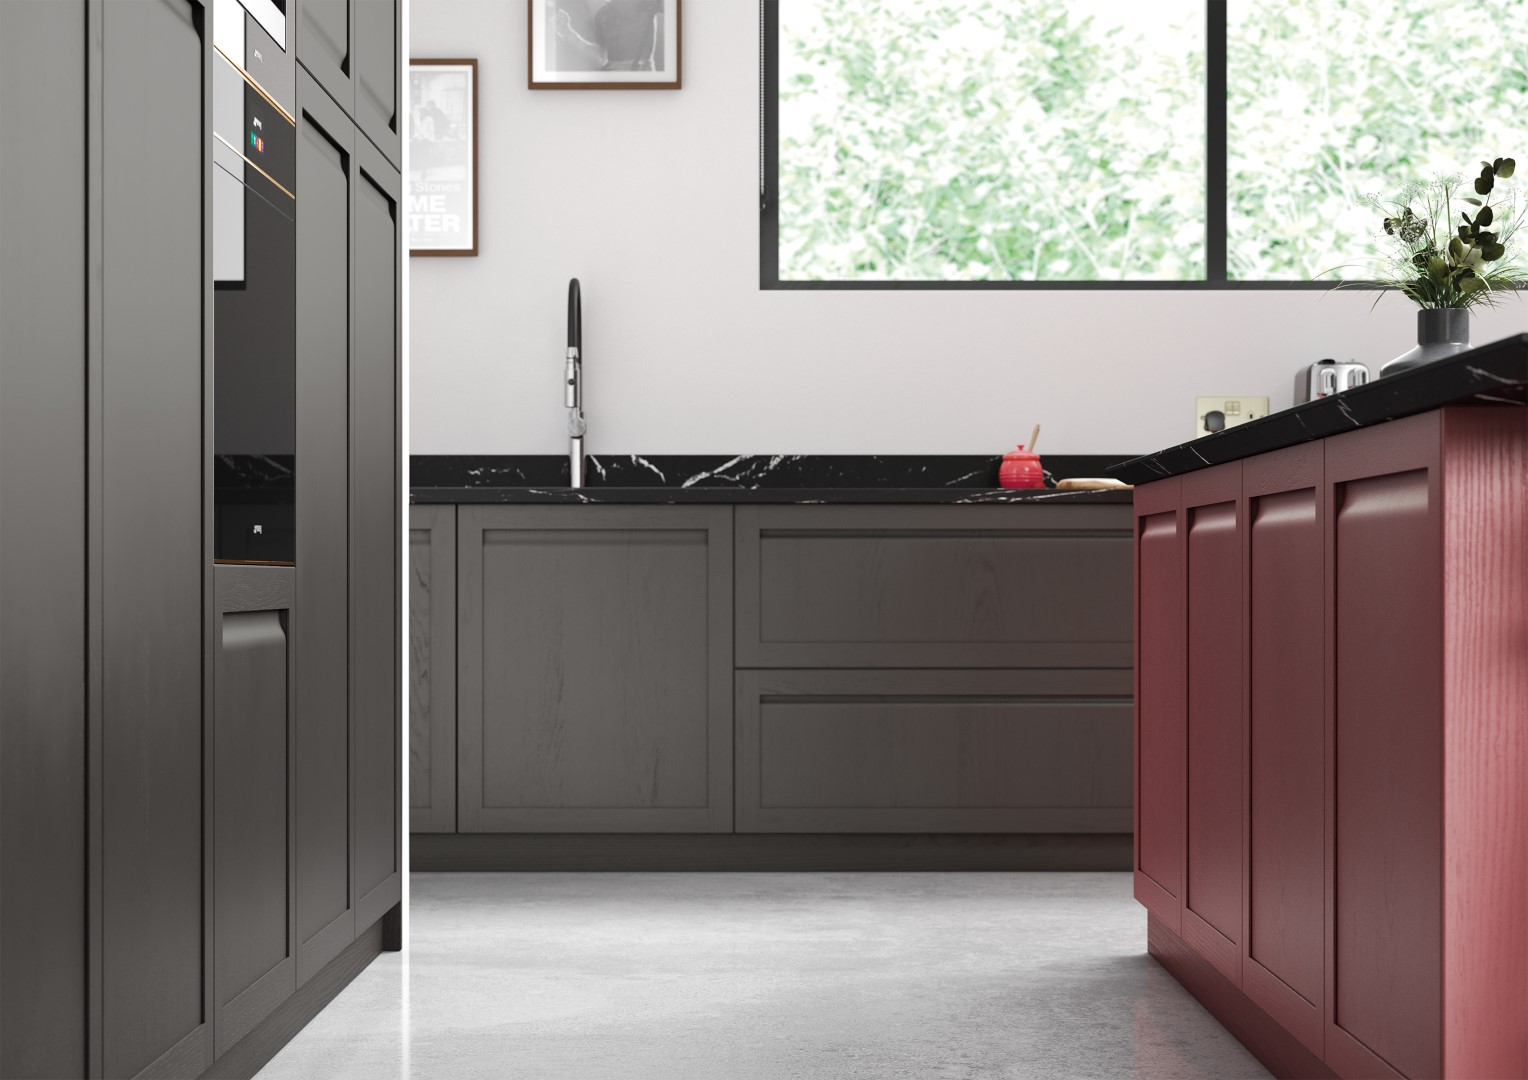 Harborne Graphite and Chicory Red - Kitchen Design - Alan Kelly Kitchens - Waterford - 4